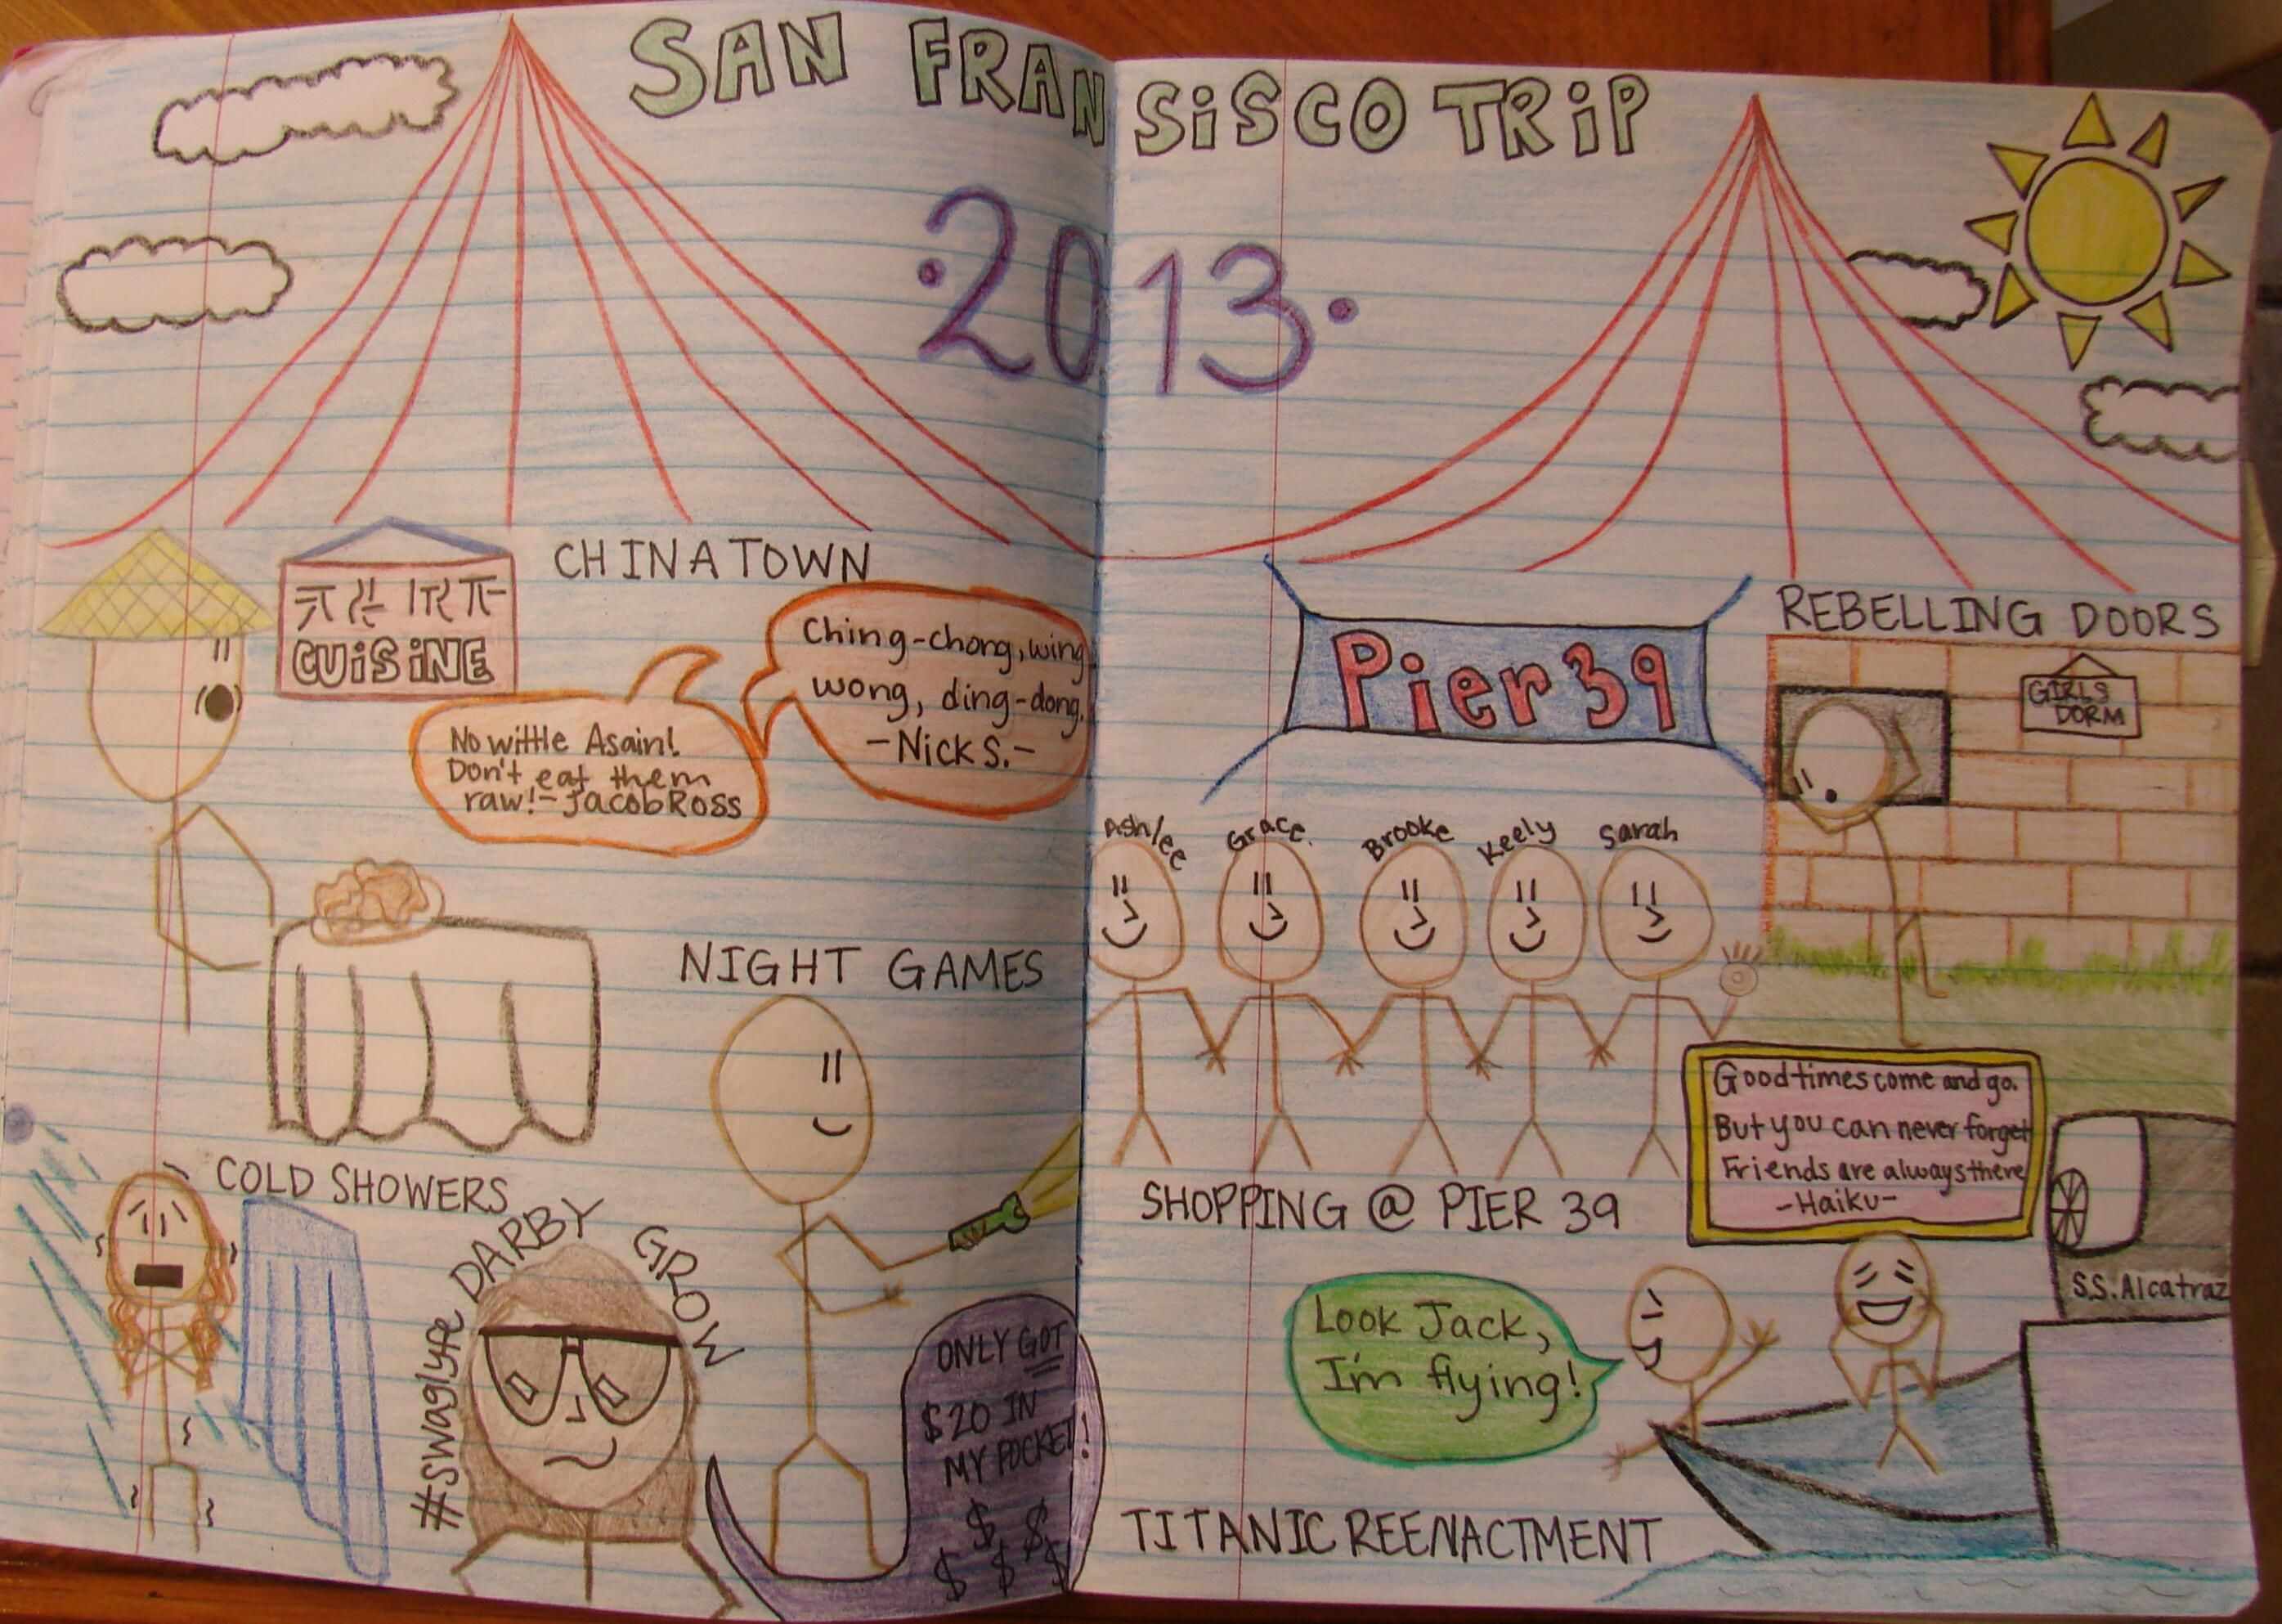 """Our 8th graders have a special category in the """"Mr. Stick of the Year"""" contest because of our three-day trip to San Francisco.  If they """"Mr. Stick-ed"""" their best memories.  Sarah put a lot of work into this page.  I just love the idea of her finding this page 5 or 10 years from now and having that whole trip come back to her: This was an entry for my annual """"Mr. Stick of the Year"""" notebook challenge: http://corbettharrison.com/GT/MrStickoftheYear.htm"""